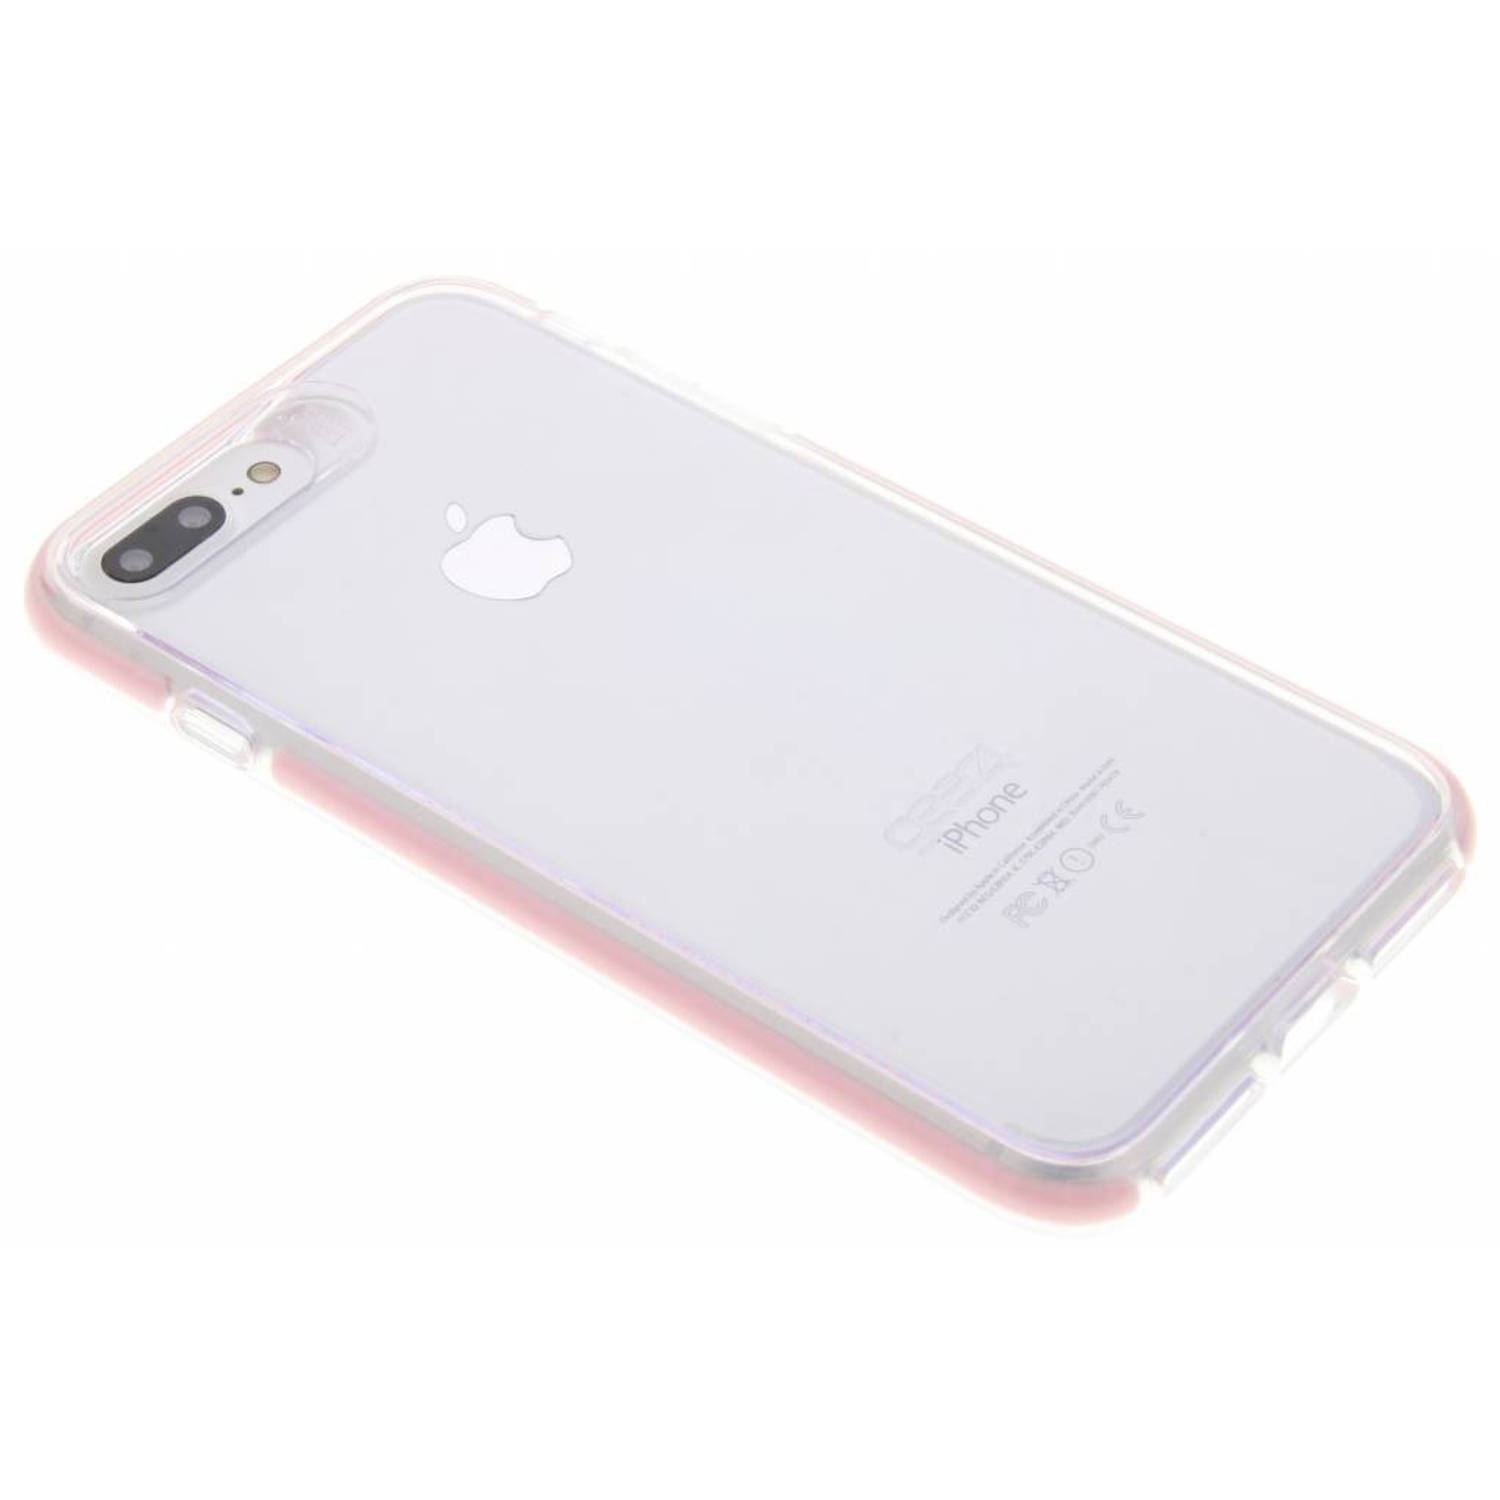 D3O Piccadilly Case voor de iPhone 8 Plus / 7 Plus - Roze